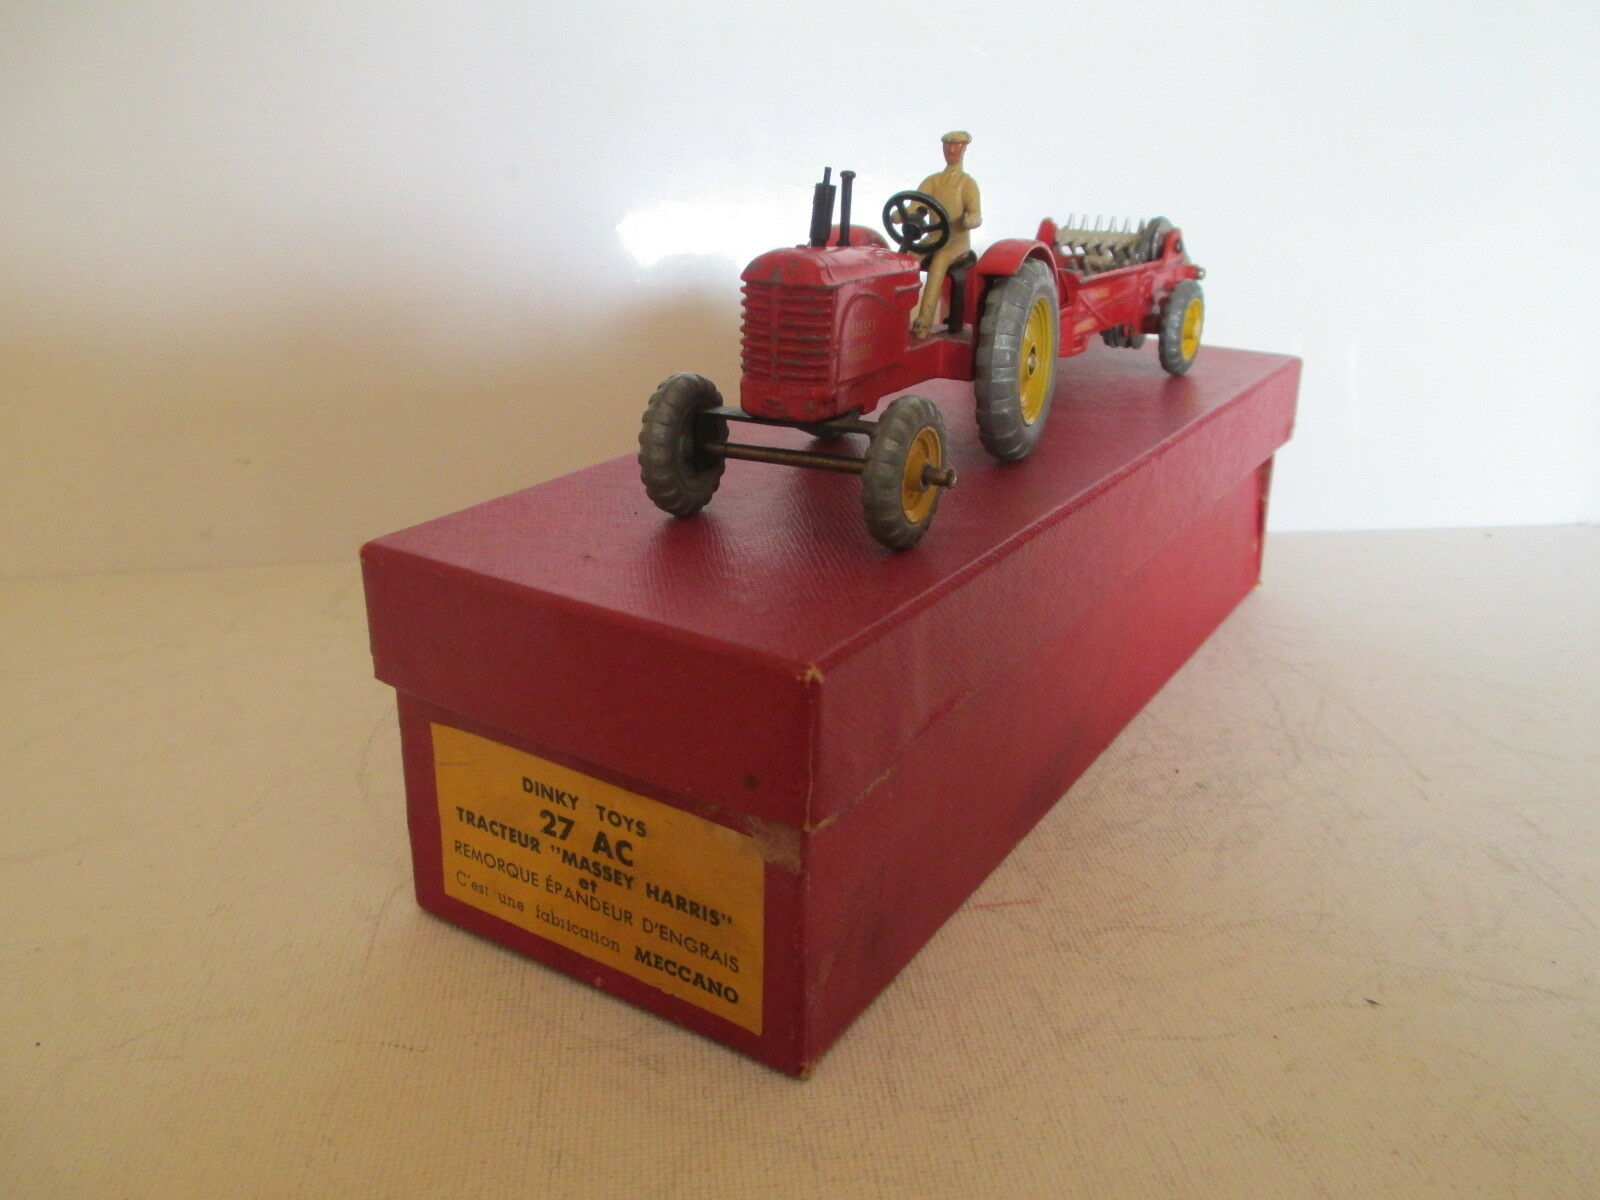 Dinky 27ac massey harris tractor fertilizer man in charge uncommon uncommon l @ @ k